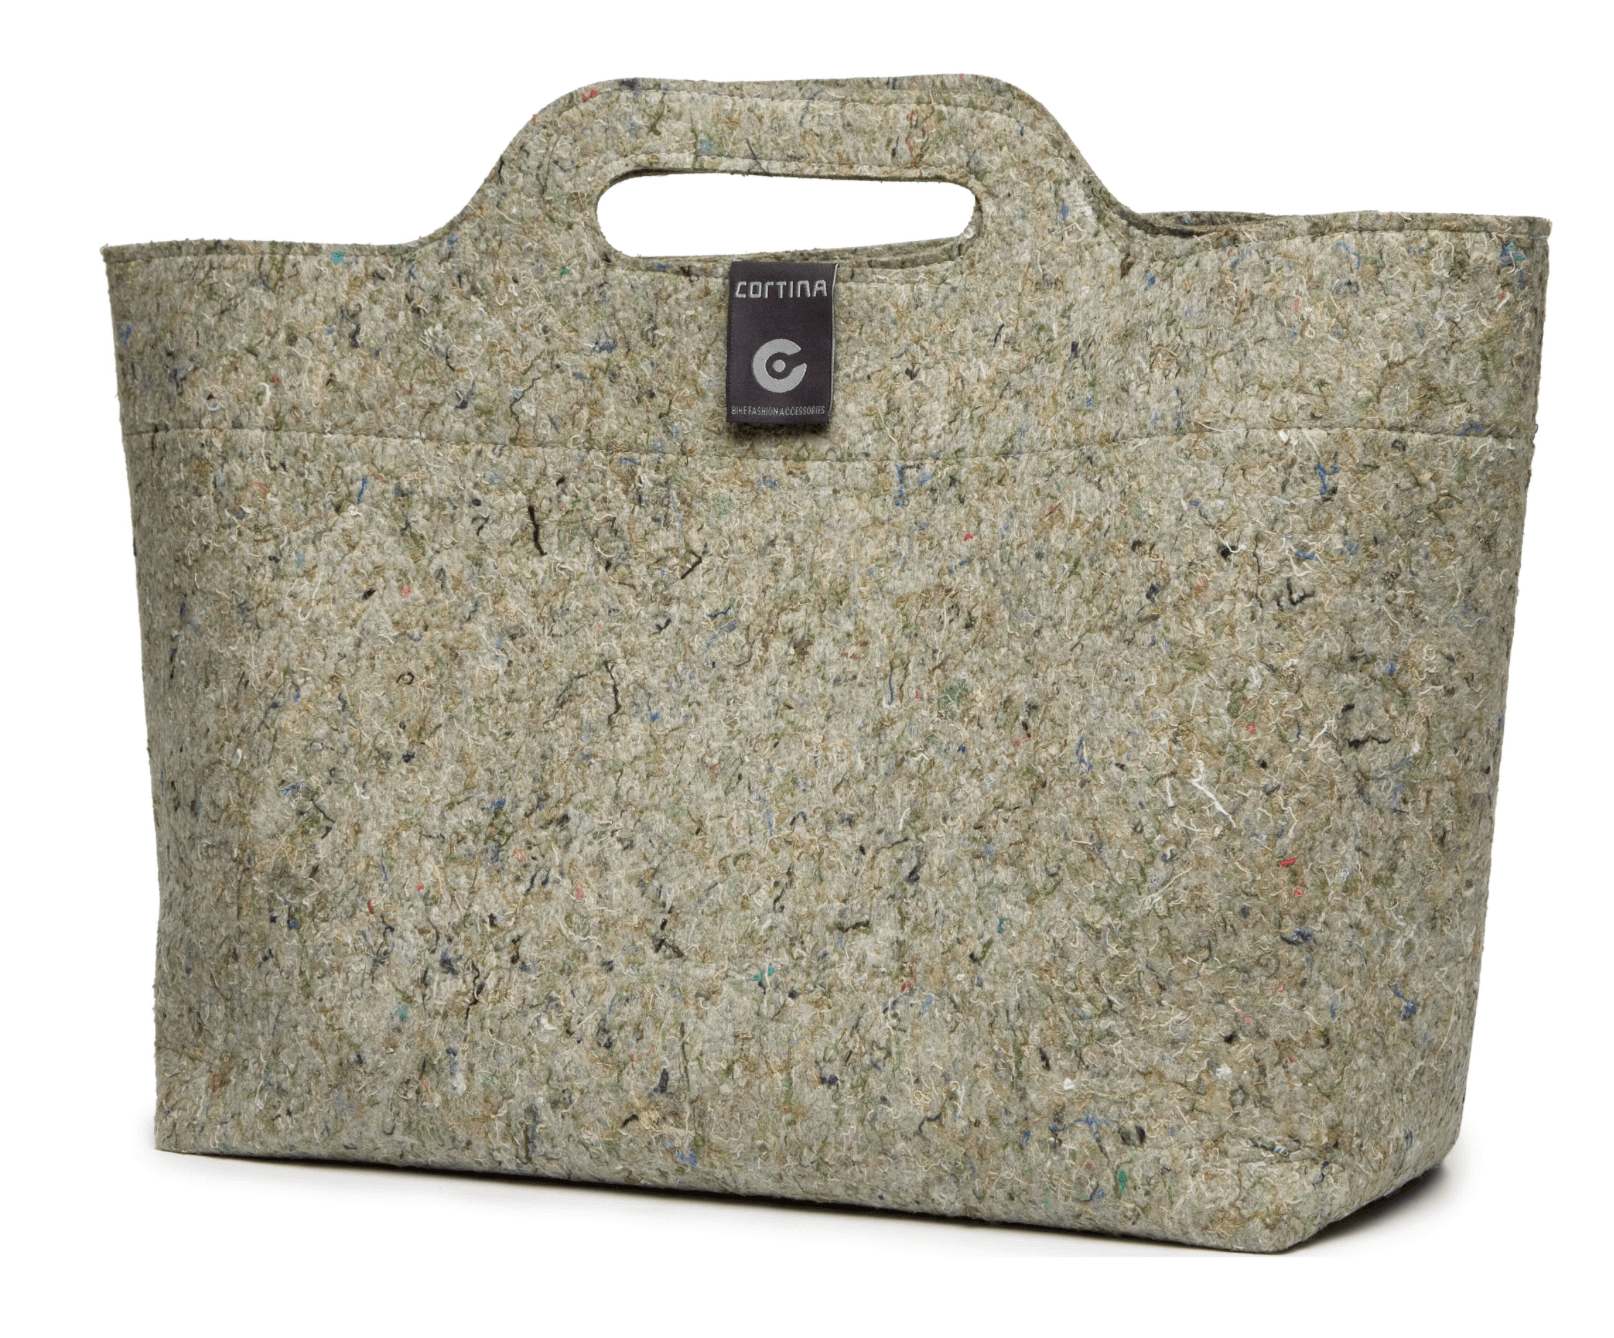 Cortina Sofia Shopper Bag